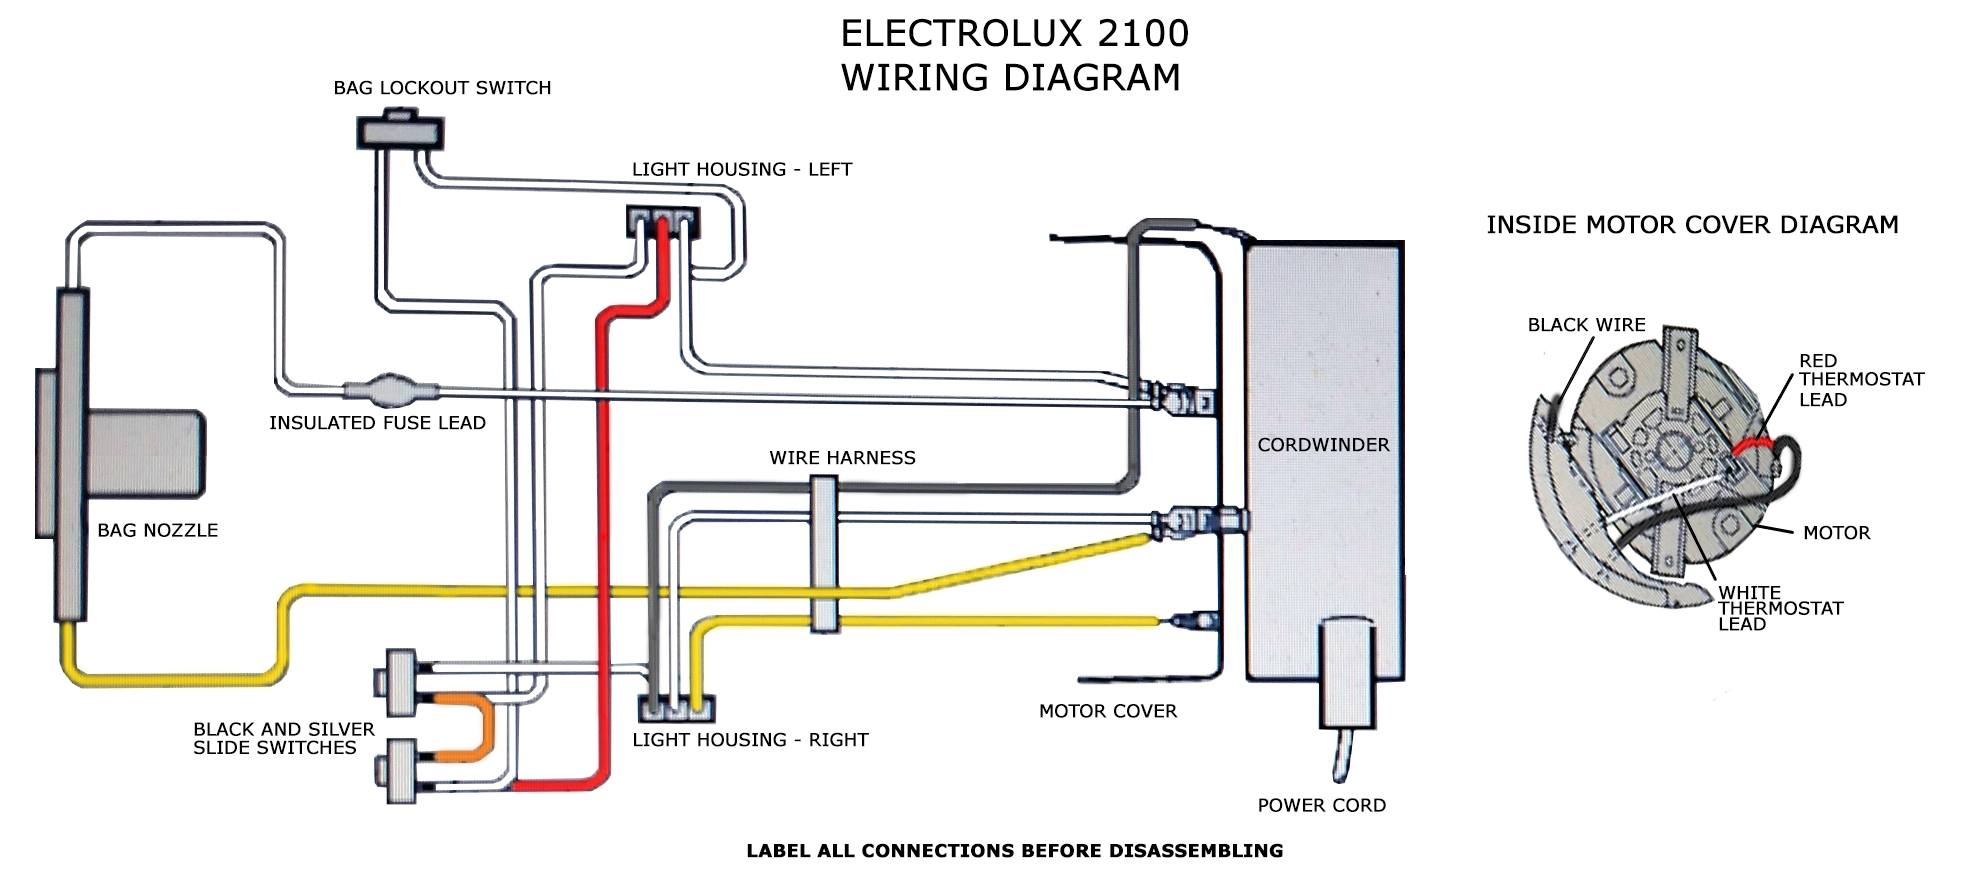 Electrolux 2100 Wiring Diagram – Kubota Wire Diagram